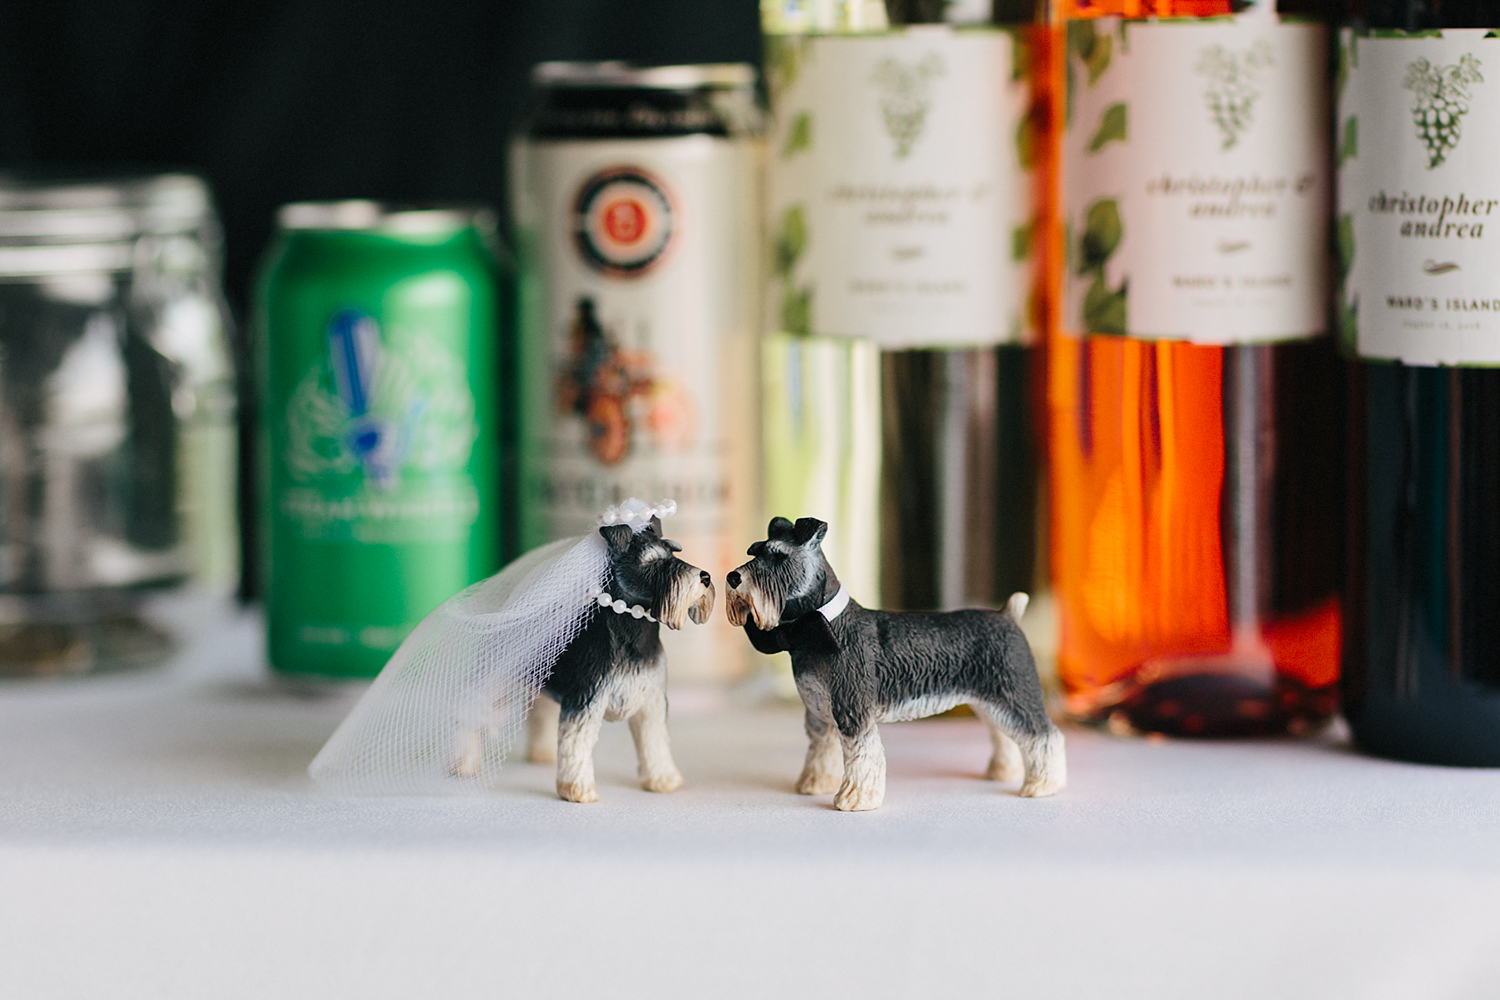 Toronto-Island-Wedding-Toronto-Best-Film-Wedding-Photographers-3b-photography-analog-photography-wards-island-clubhouse-junebug-weddings-vintage-venue-reception-cocktail-hour-candid-guests-mingling-details-cute-dog-terrier-cake-topper.jpg